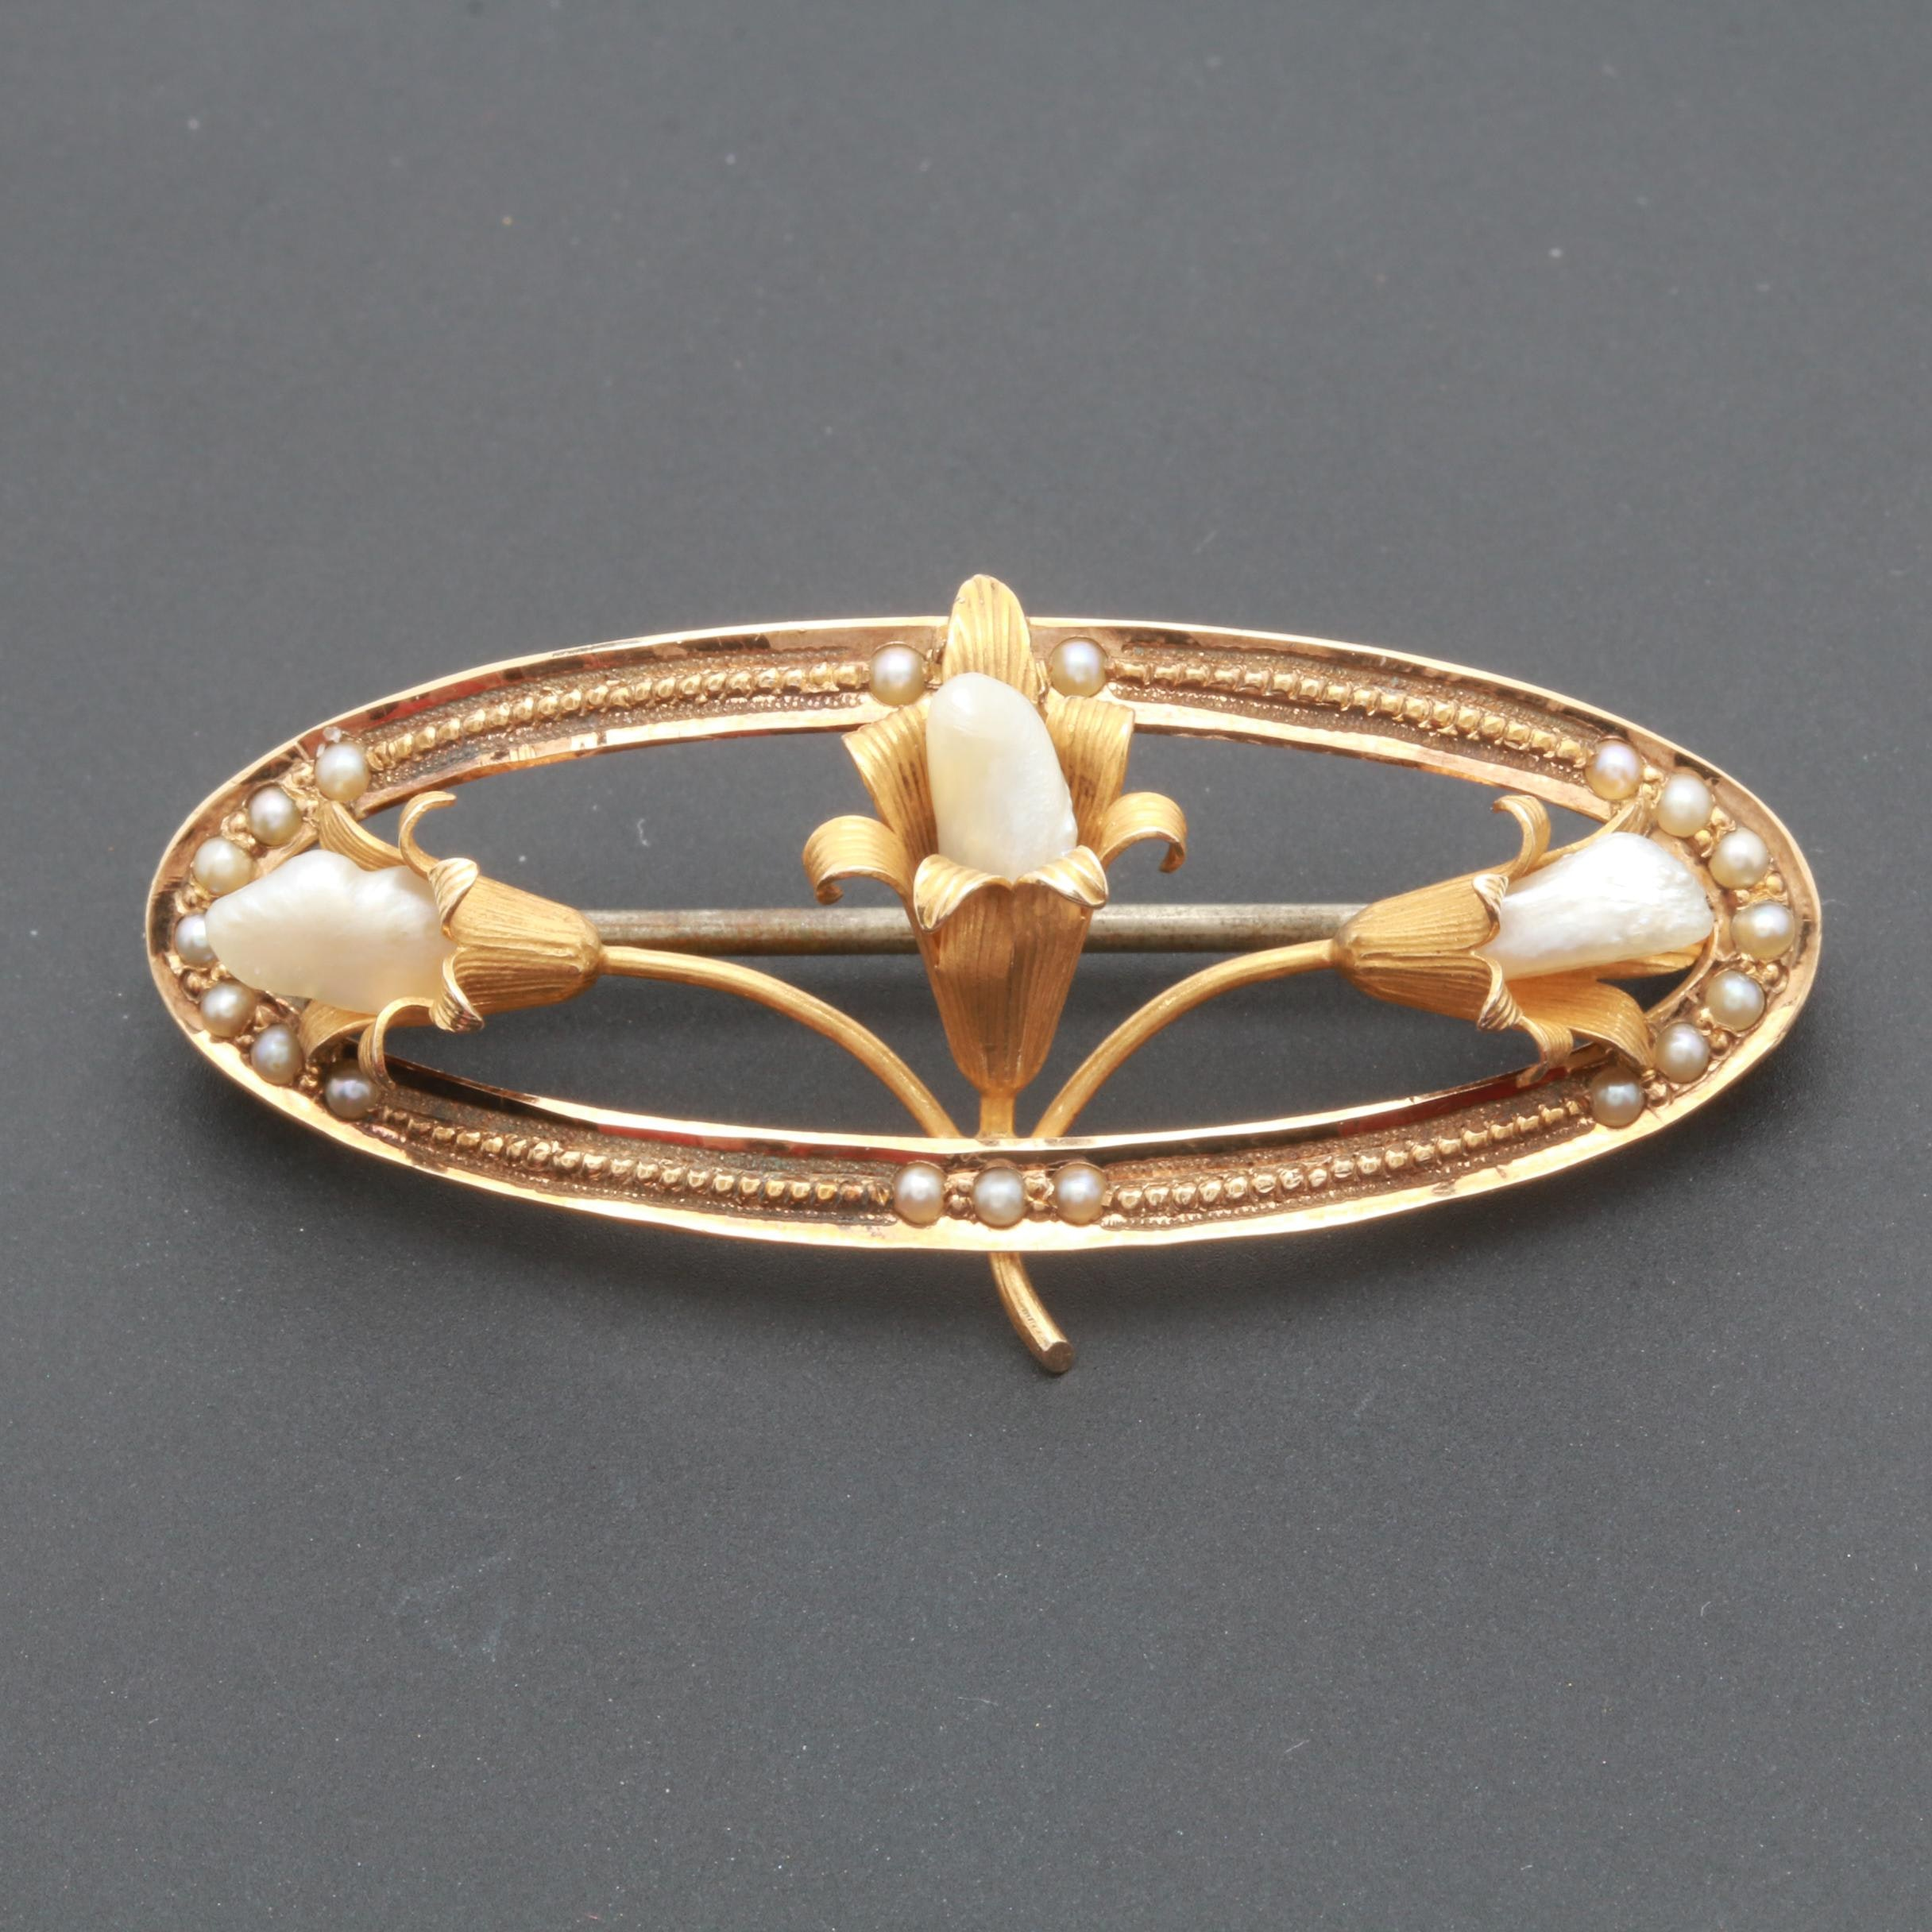 Arts and Crafts 14K Yellow Gold Seed and Cultured Pearl Brooch